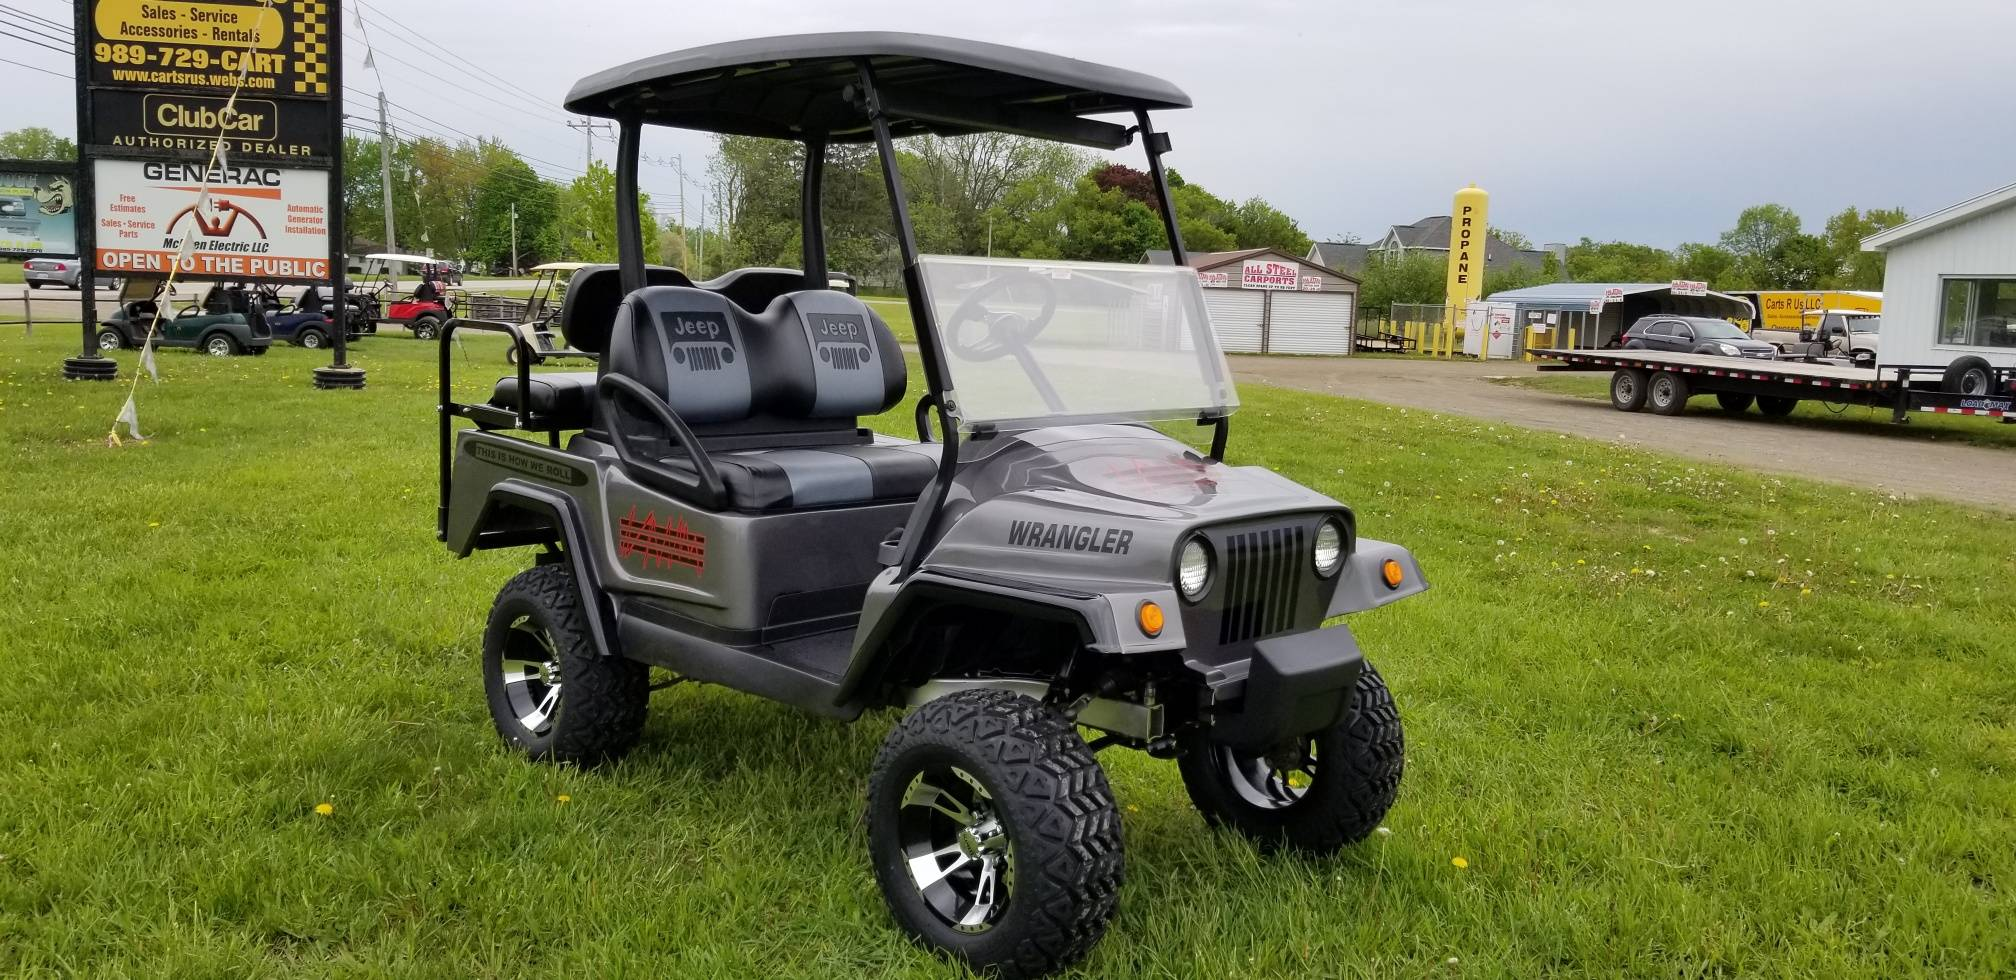 2015 Club Car Precedent with Jeep Body